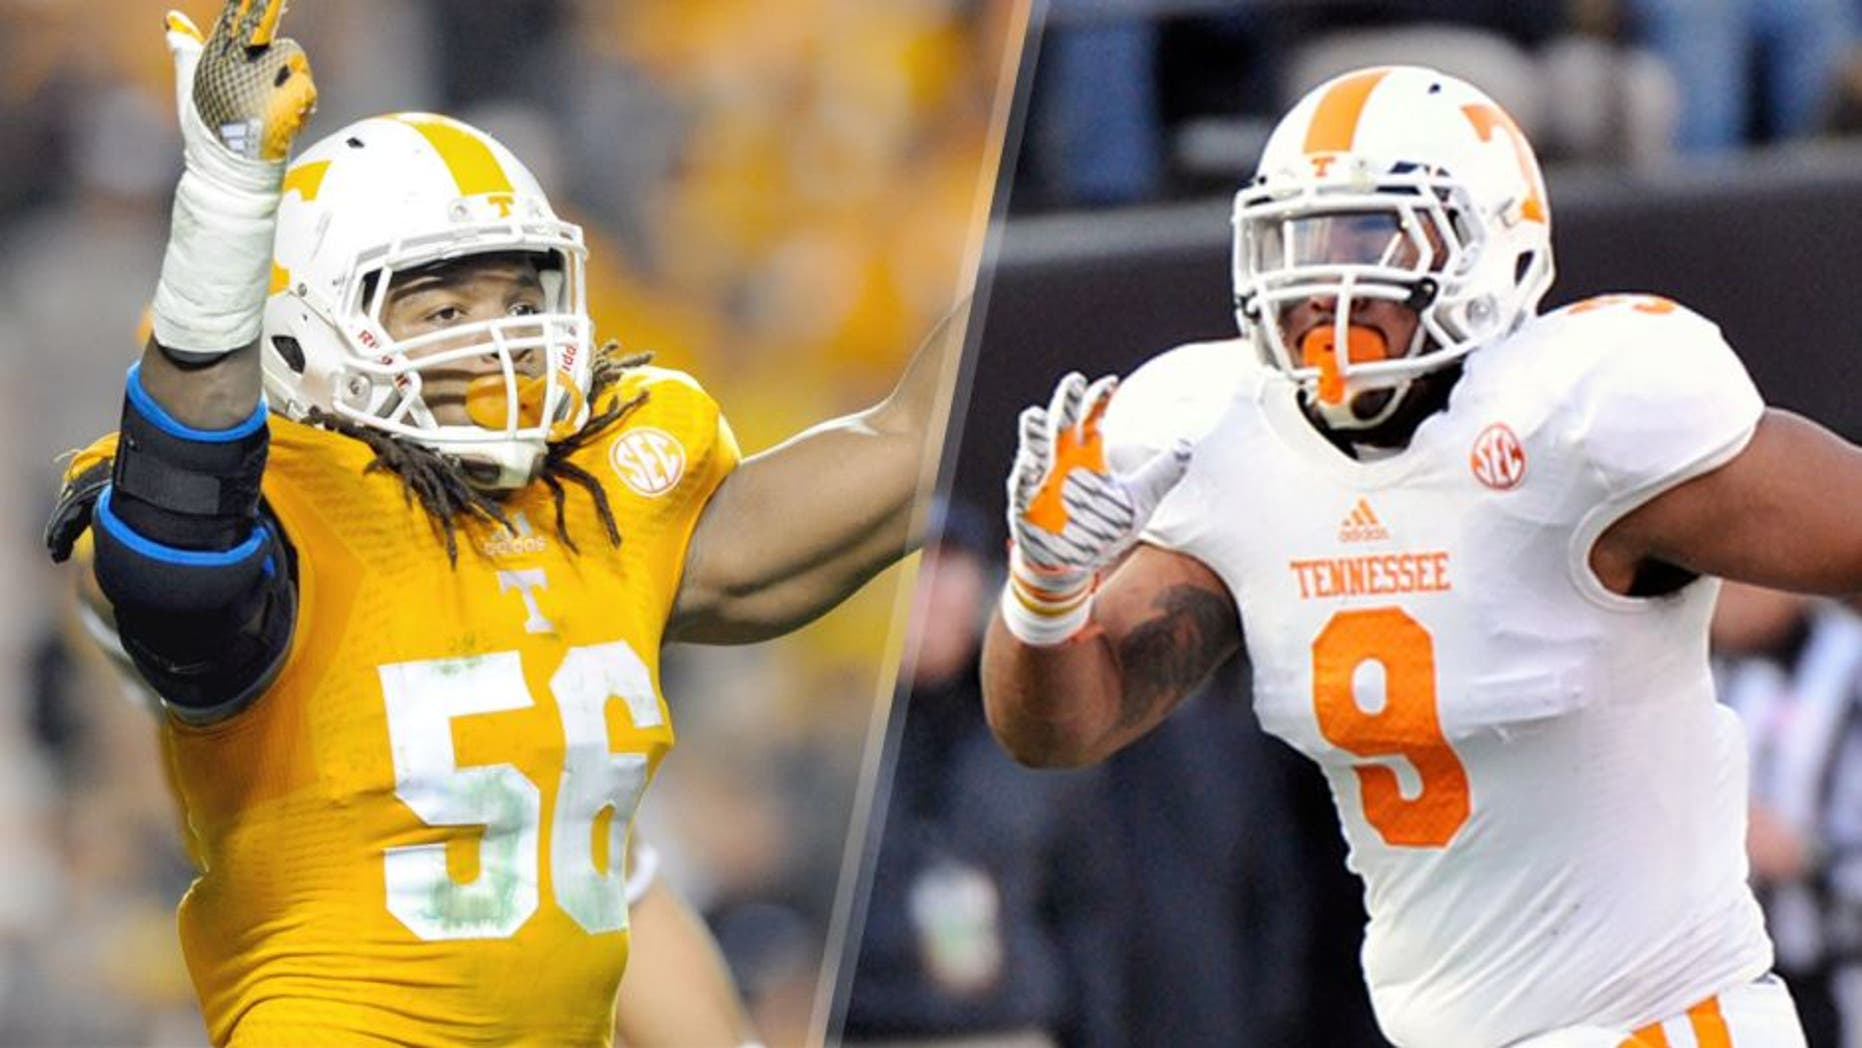 L - Nov 22, 2014; Knoxville, TN, USA; Tennessee Volunteers defensive lineman Curt Maggitt (56) during the first half against the Missouri Tigers at Neyland Stadium. Mandatory Credit: Randy Sartin-USA TODAY Sports R - NASHVILLE, TN - NOVEMBER 29: Derek Barnett #9 of the Tennessee Volunteers plays against the Vanderbilt Commodores at Vanderbilt Stadium on November 29, 2014 in Nashville, Tennessee. (Photo by Frederick Breedon/Getty Images)